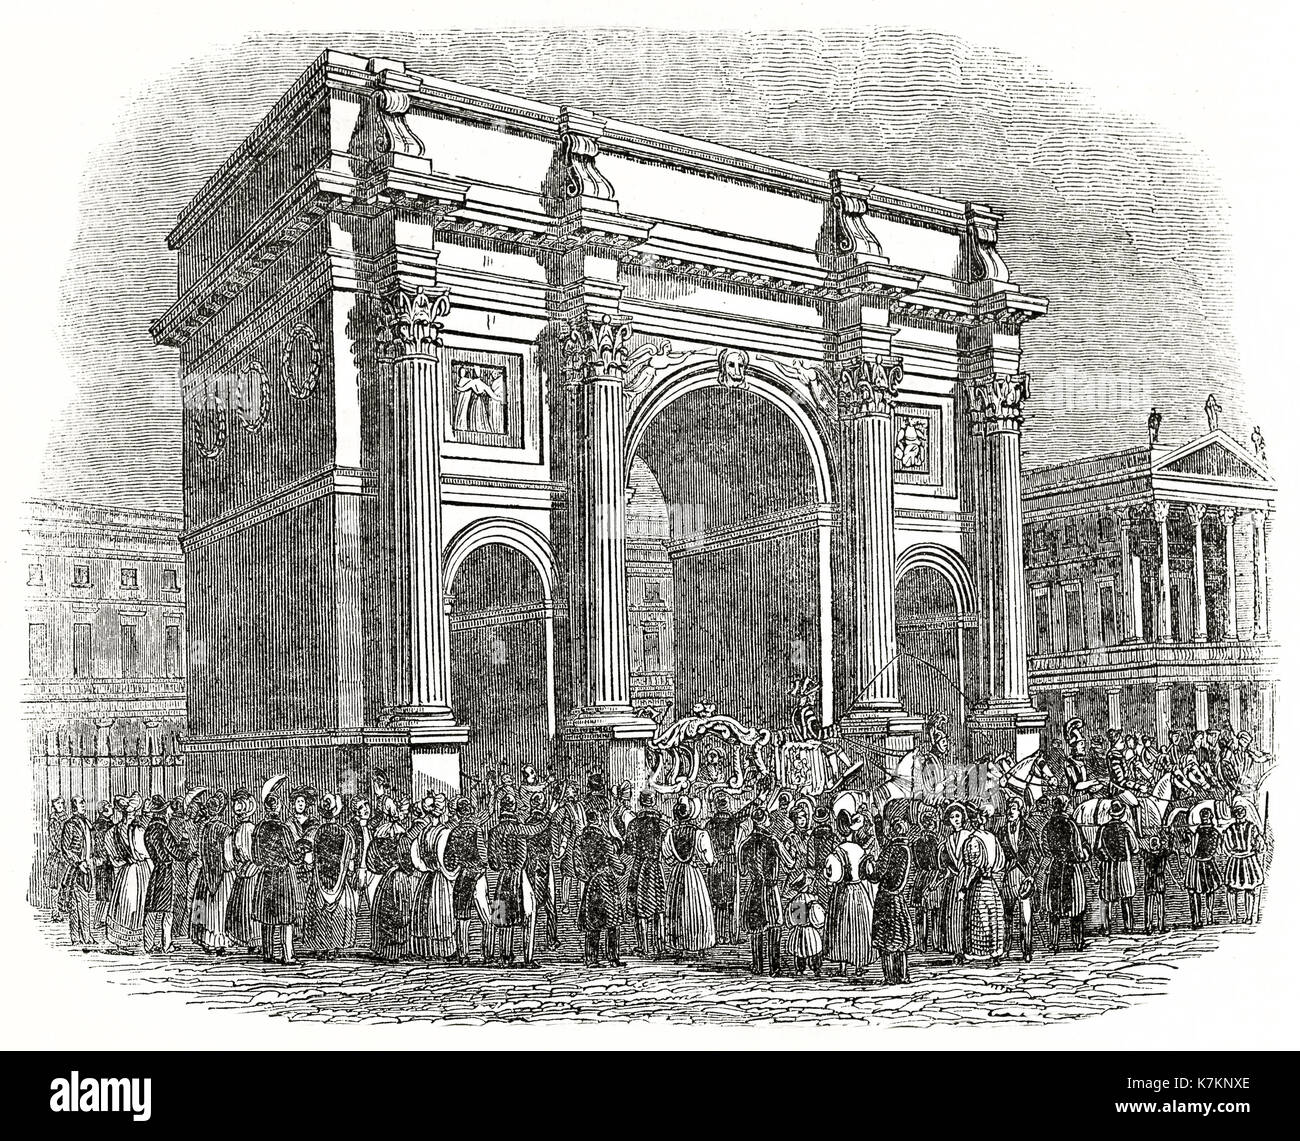 Old view of the Marble Arch, London. By unidentified author, publ. on The Penny Magazine, London, 1837 - Stock Image